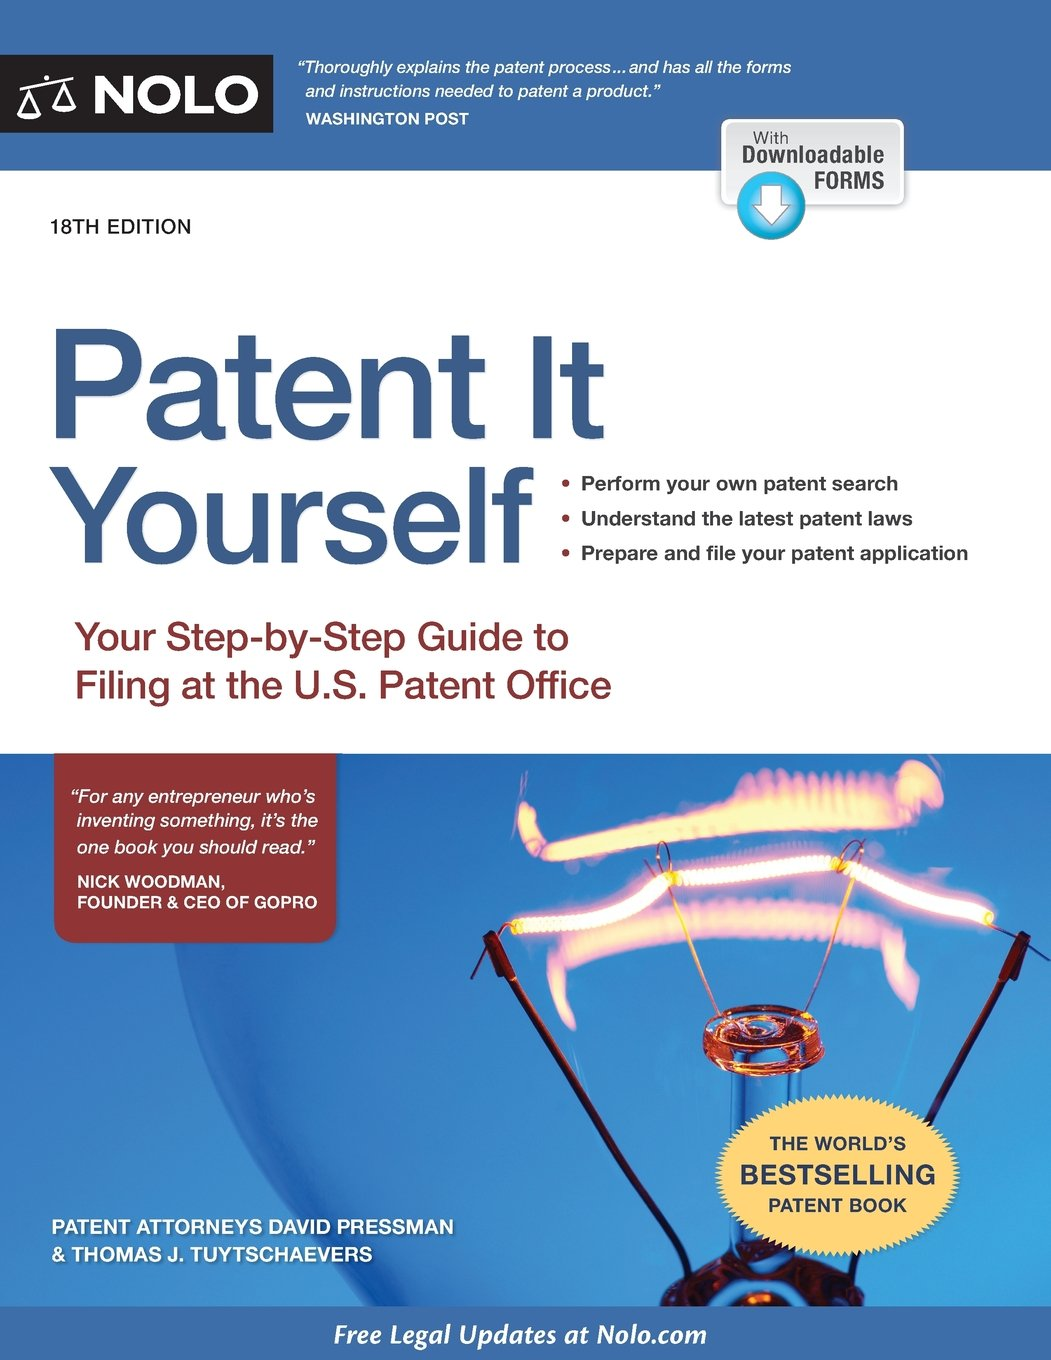 Patent it yourself your step by step guide to filing at the us patent it yourself your step by step guide to filing at the us patent office amazon david pressman attorney thomas tuytschaevers 9781413322576 solutioingenieria Choice Image